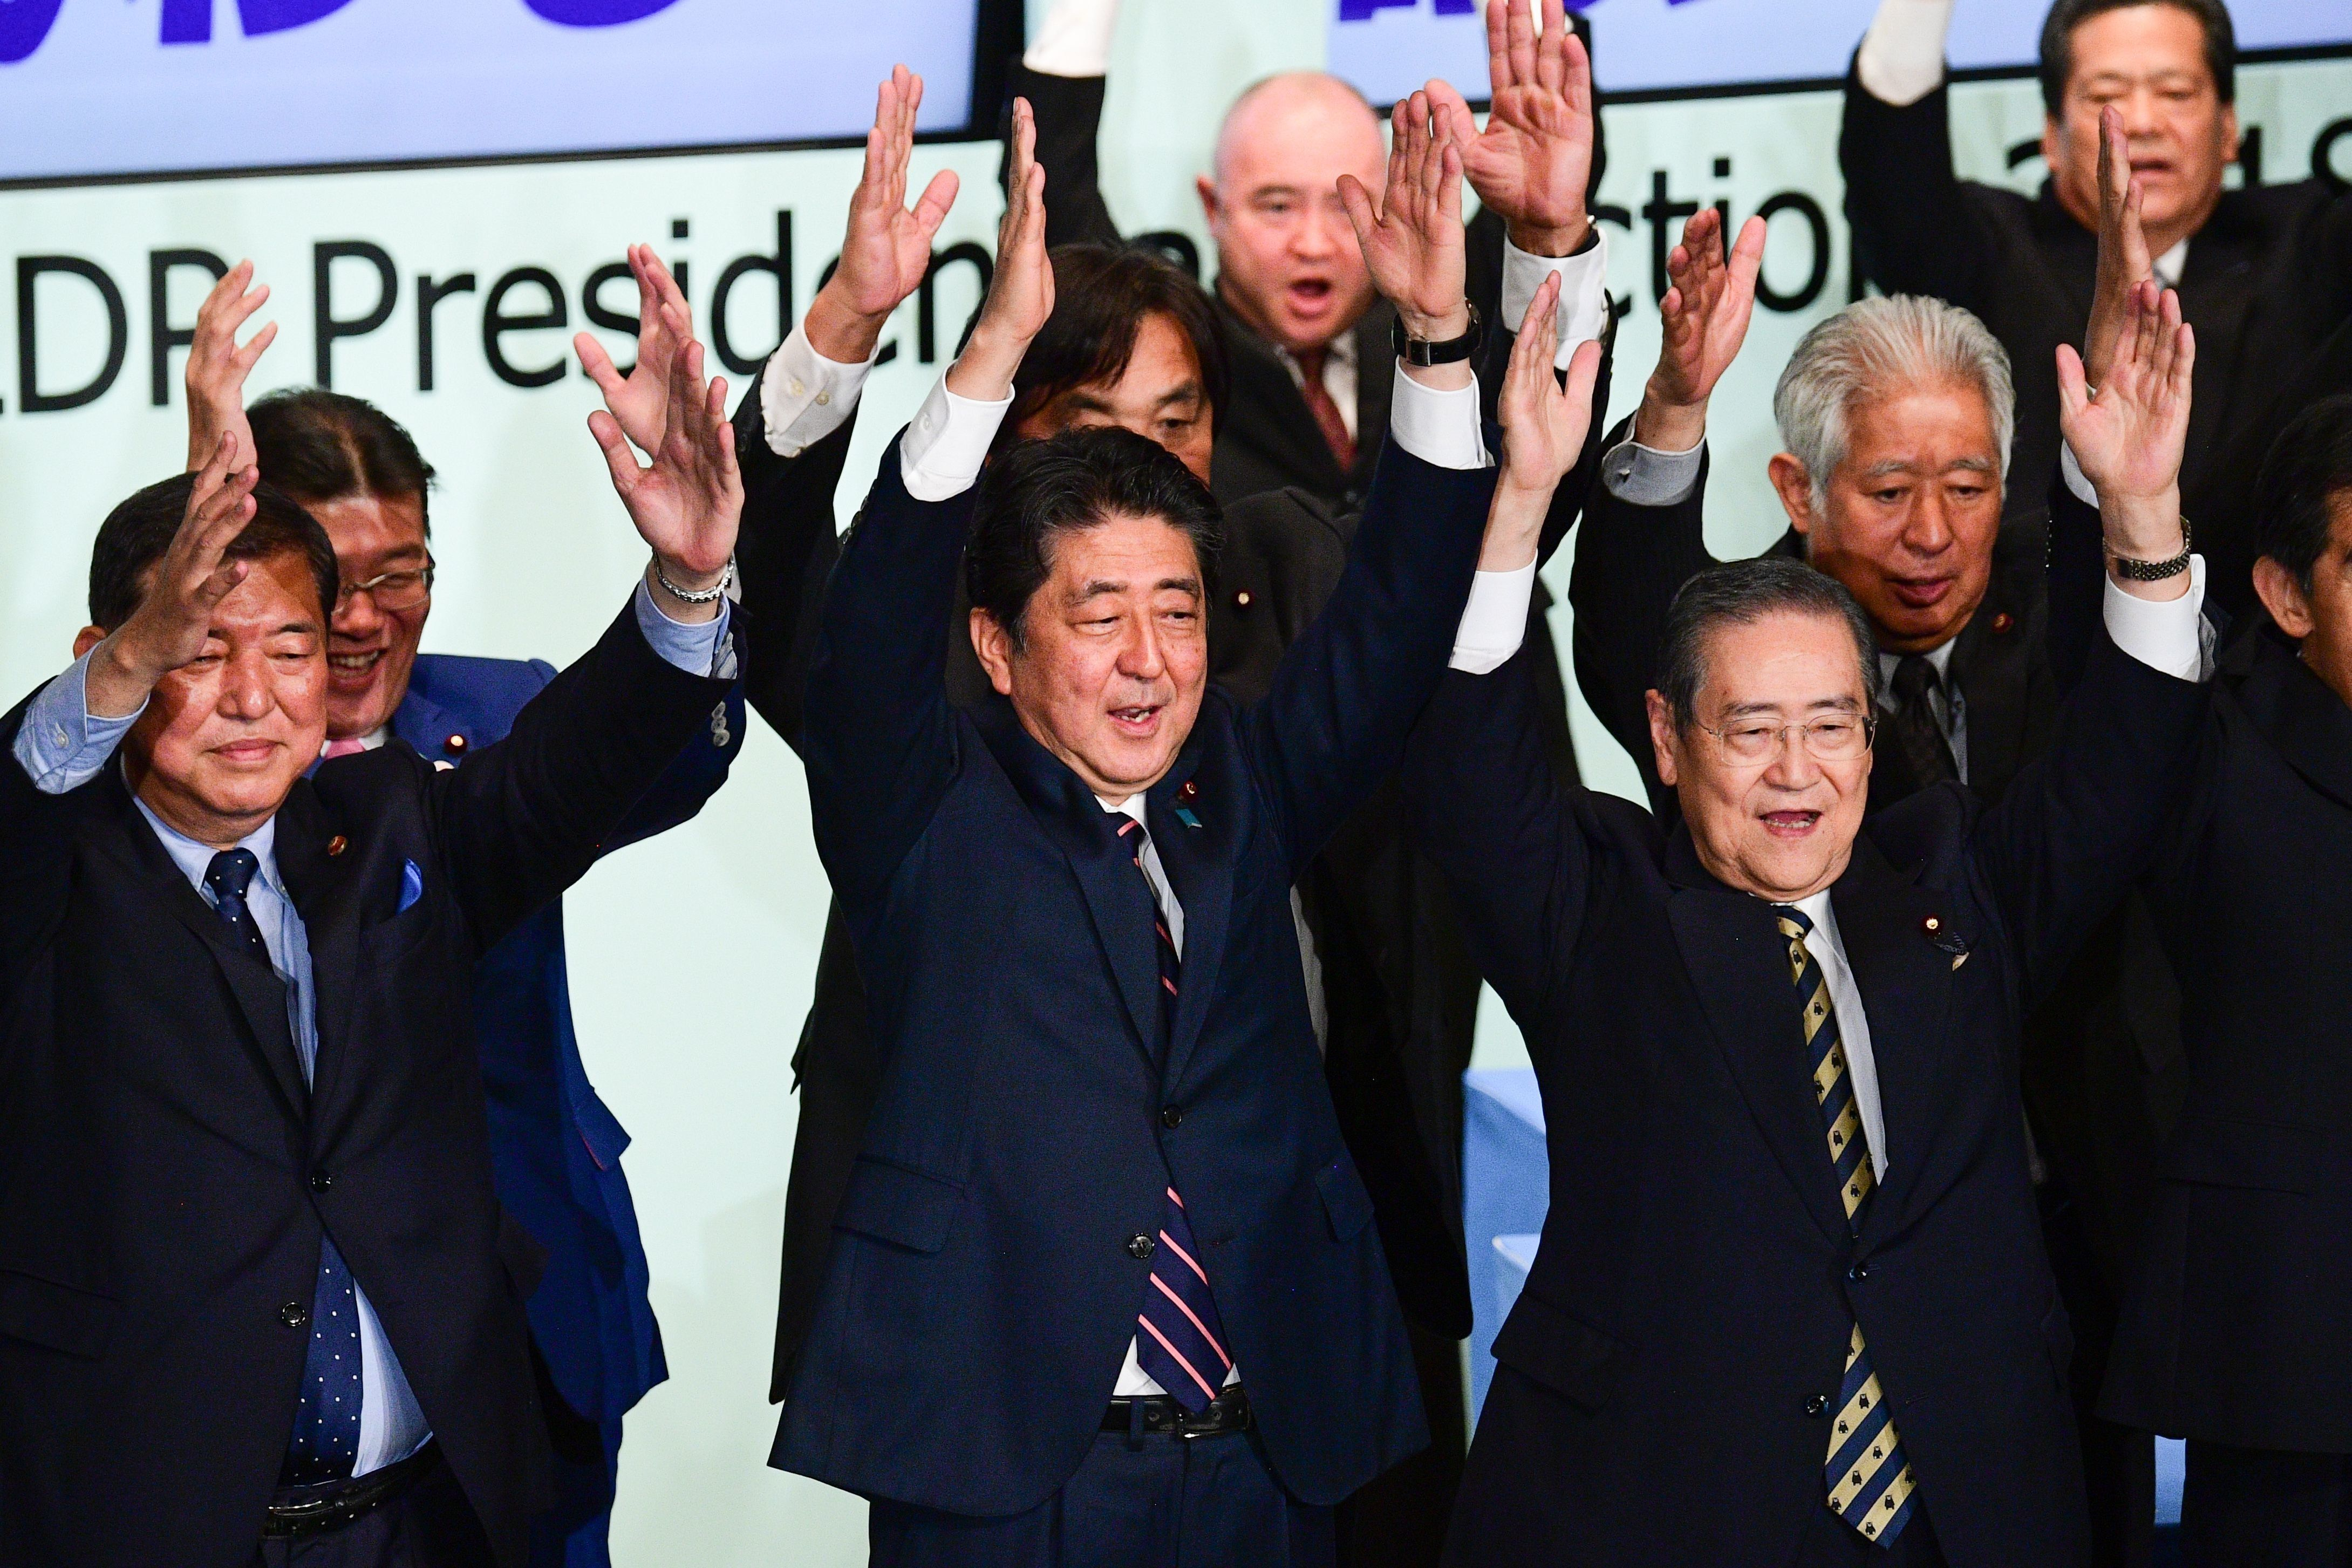 Japan's Prime Minister Shinzo Abe (C) celebrates after the ruling liberal Democratic Party (LDP) leadership election at the party's headquarters in Tokyo.